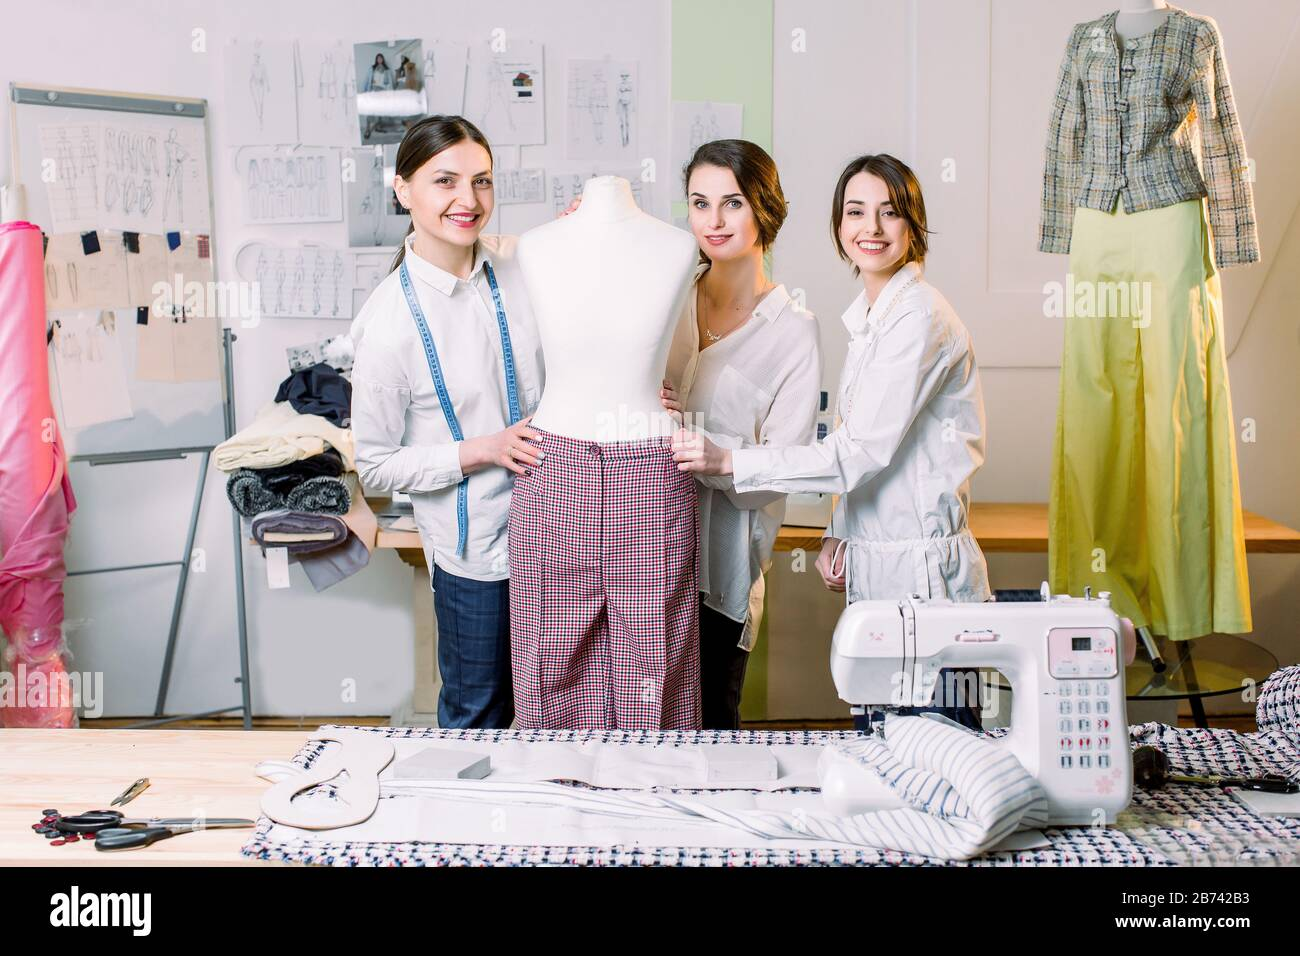 Three Happy Fashion Designers Working With Fabric Clothing Sketches Measuring Materials On Mannequin At The Studio Full Of Tailoring Tools And Equip Stock Photo Alamy